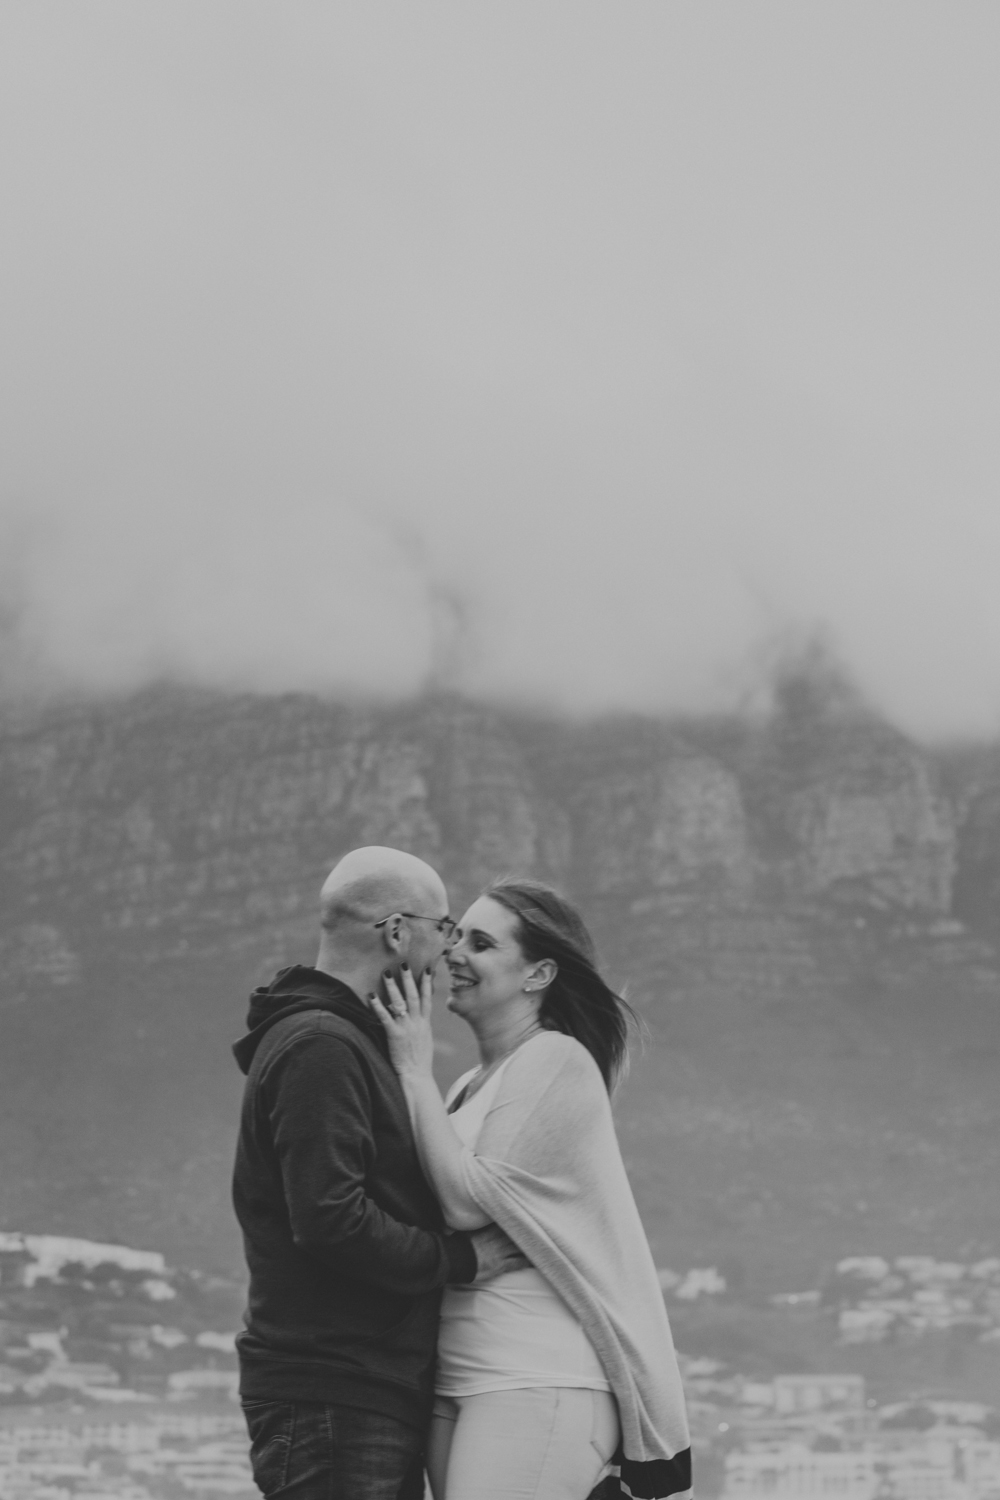 Enagagement photography Cape Town- Bianca Asher Photography-40.jpg